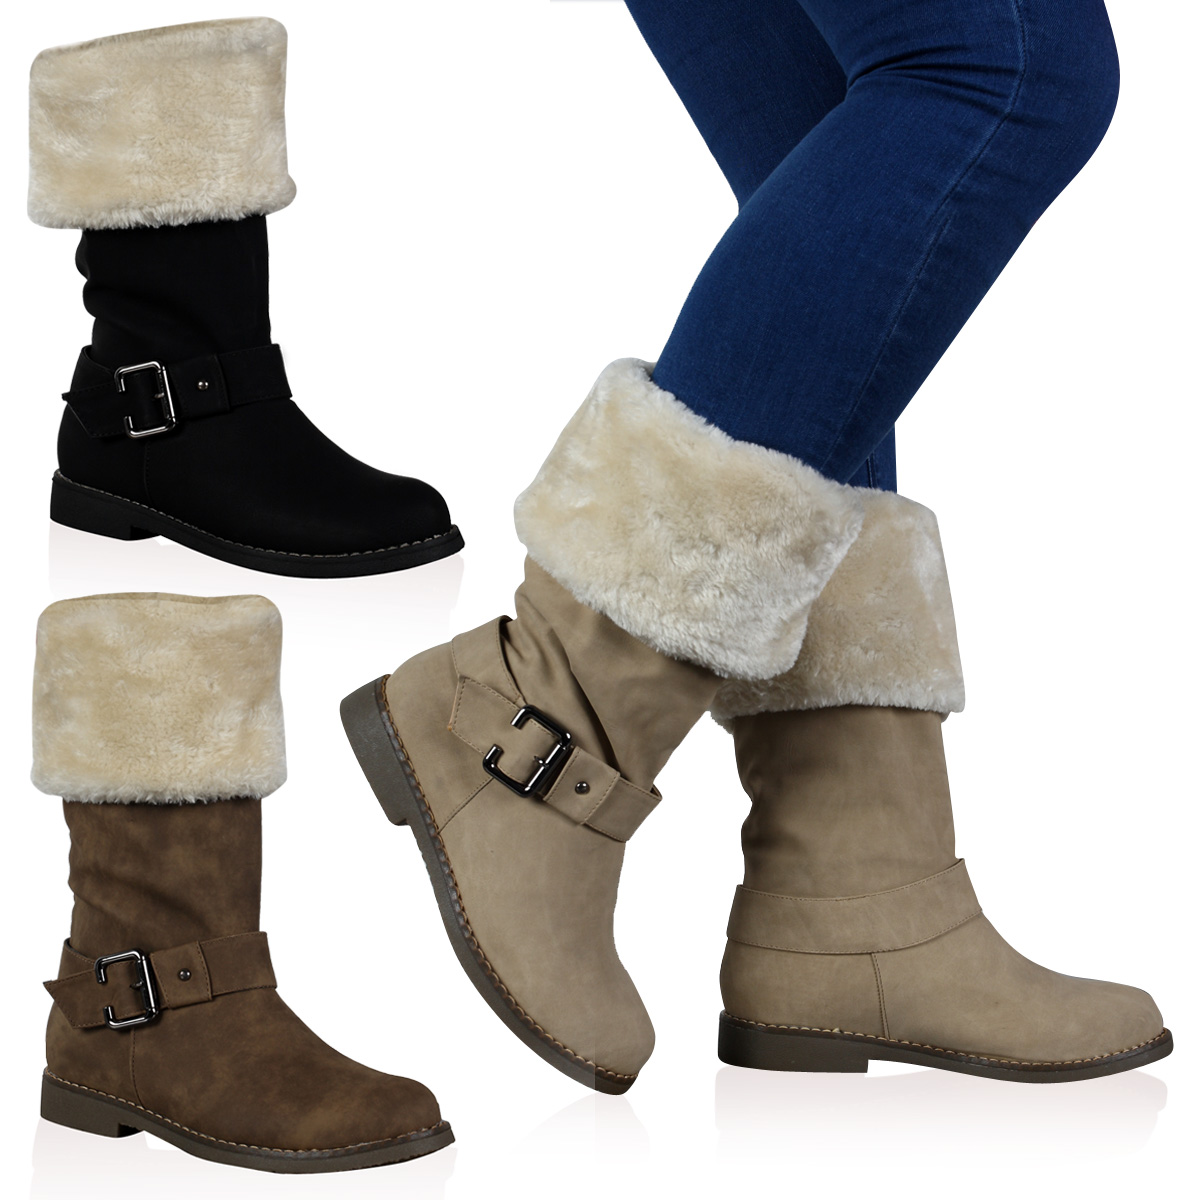 VH3 WOMENS FAUX FUR LINED TRIM LADIES FLAT WINTER CALF HIGH BOOTS ...